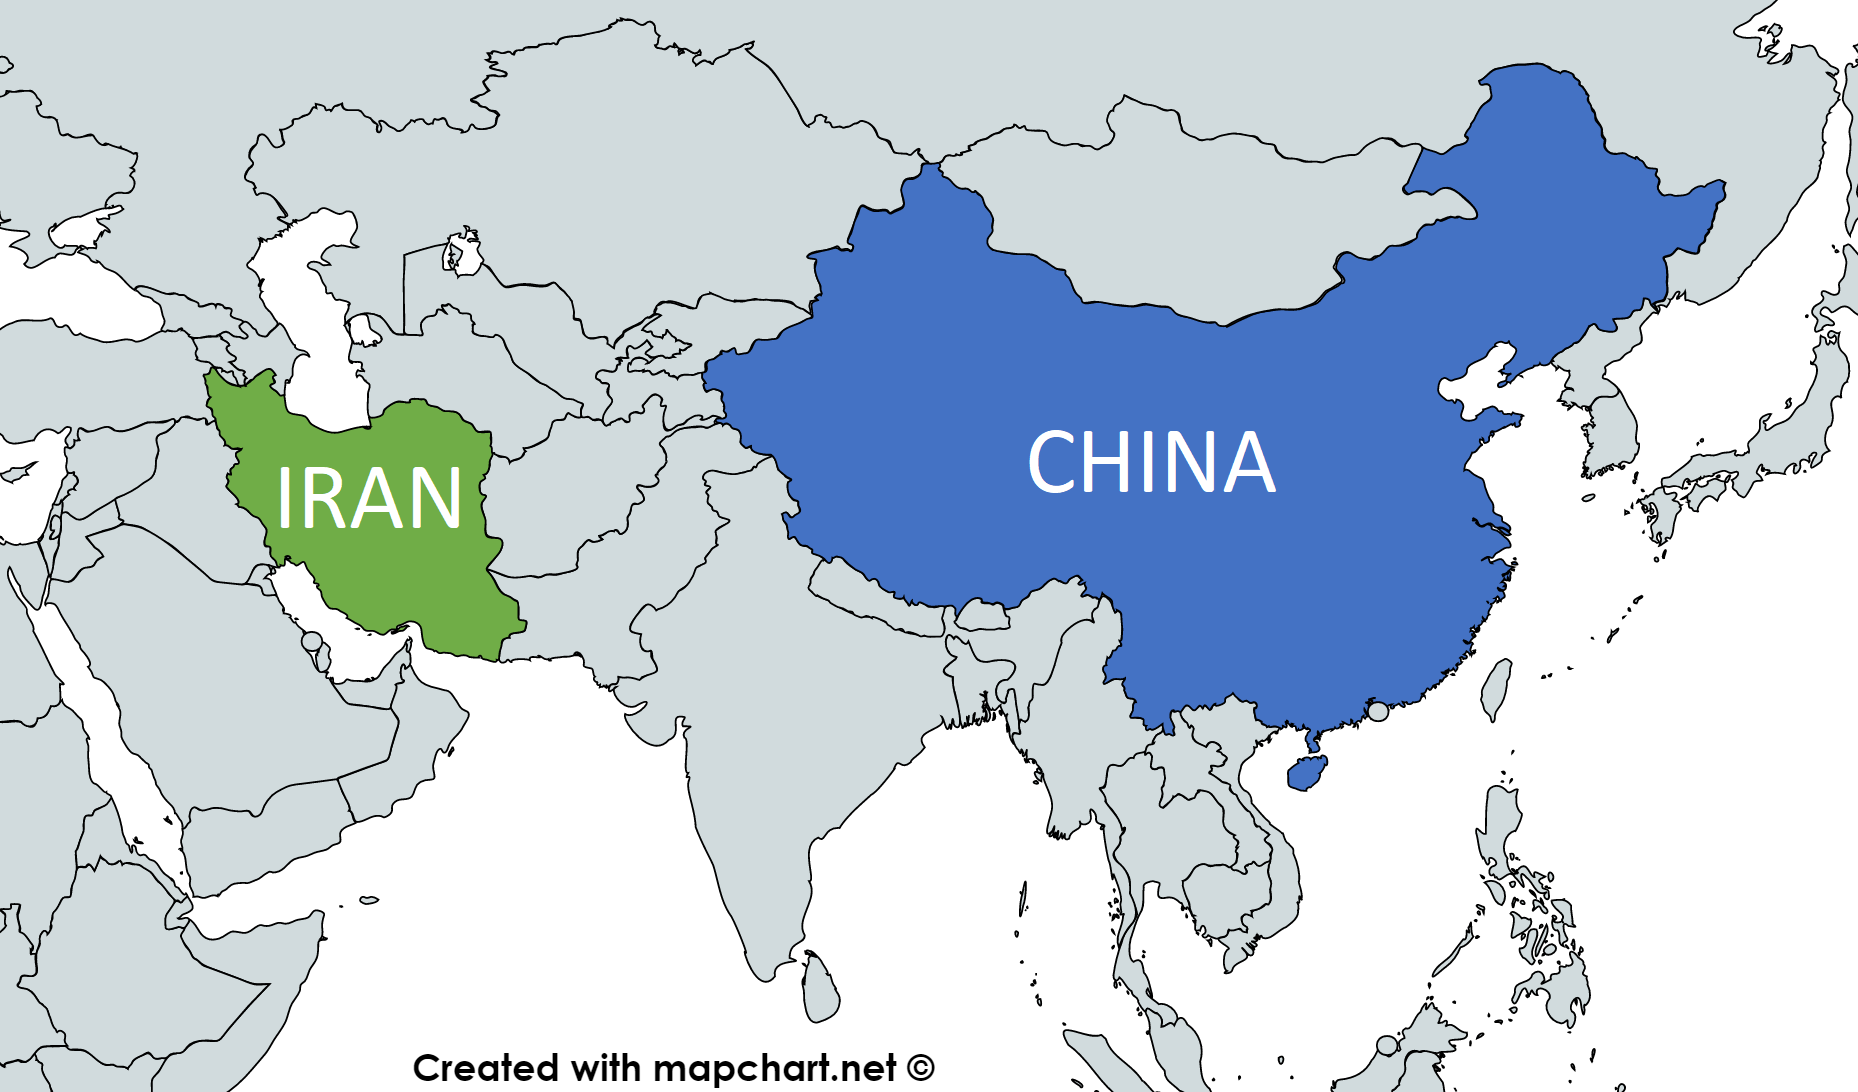 Iran-China Map